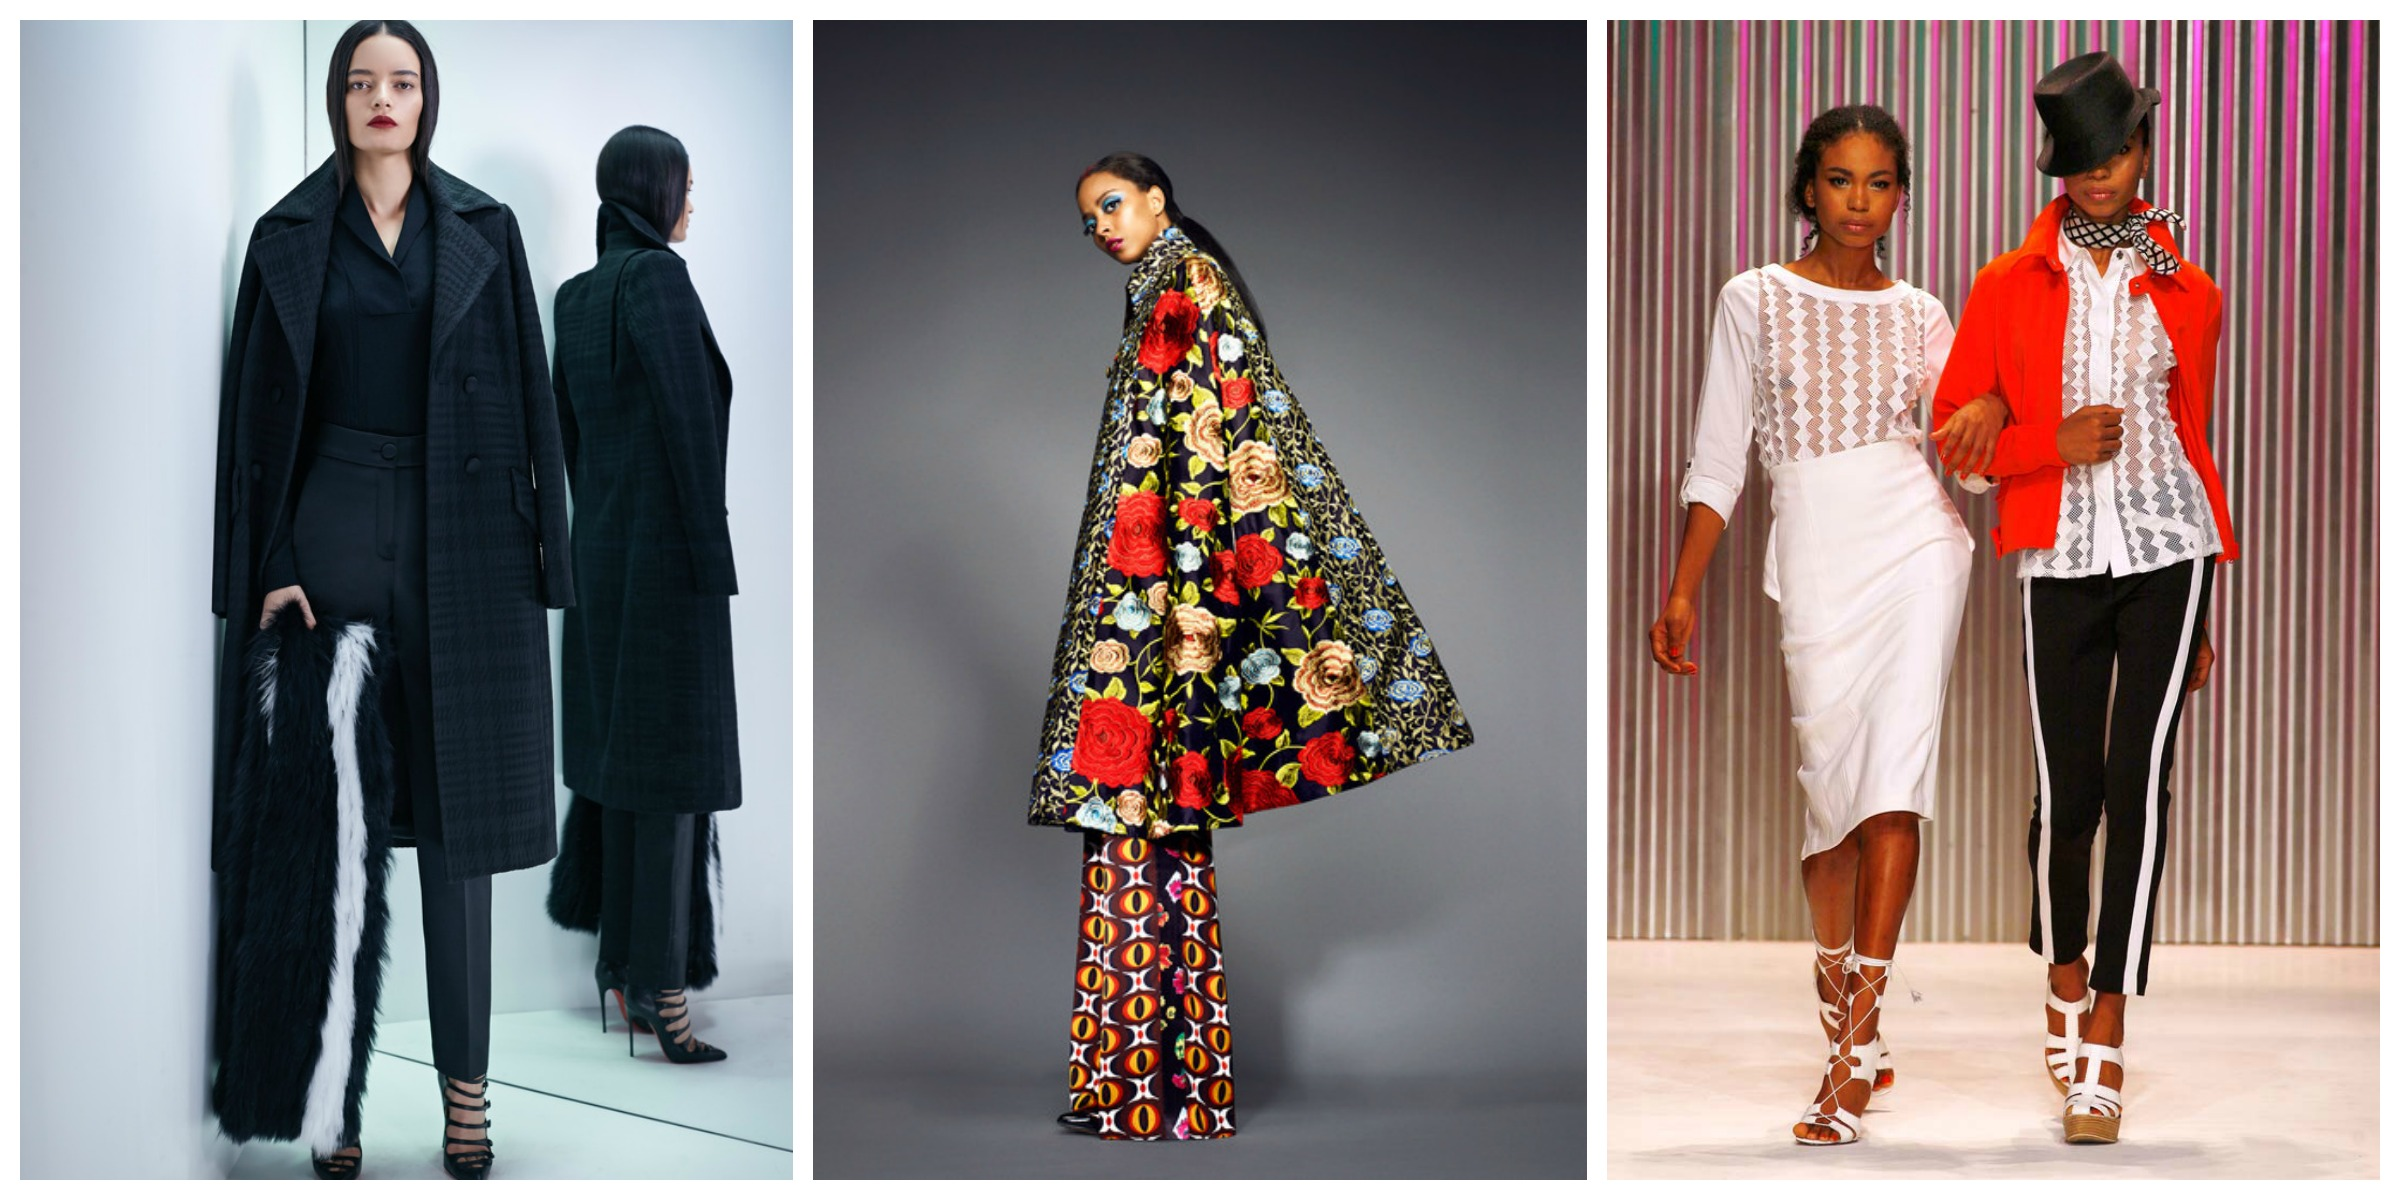 Fashion designers influenced by culture